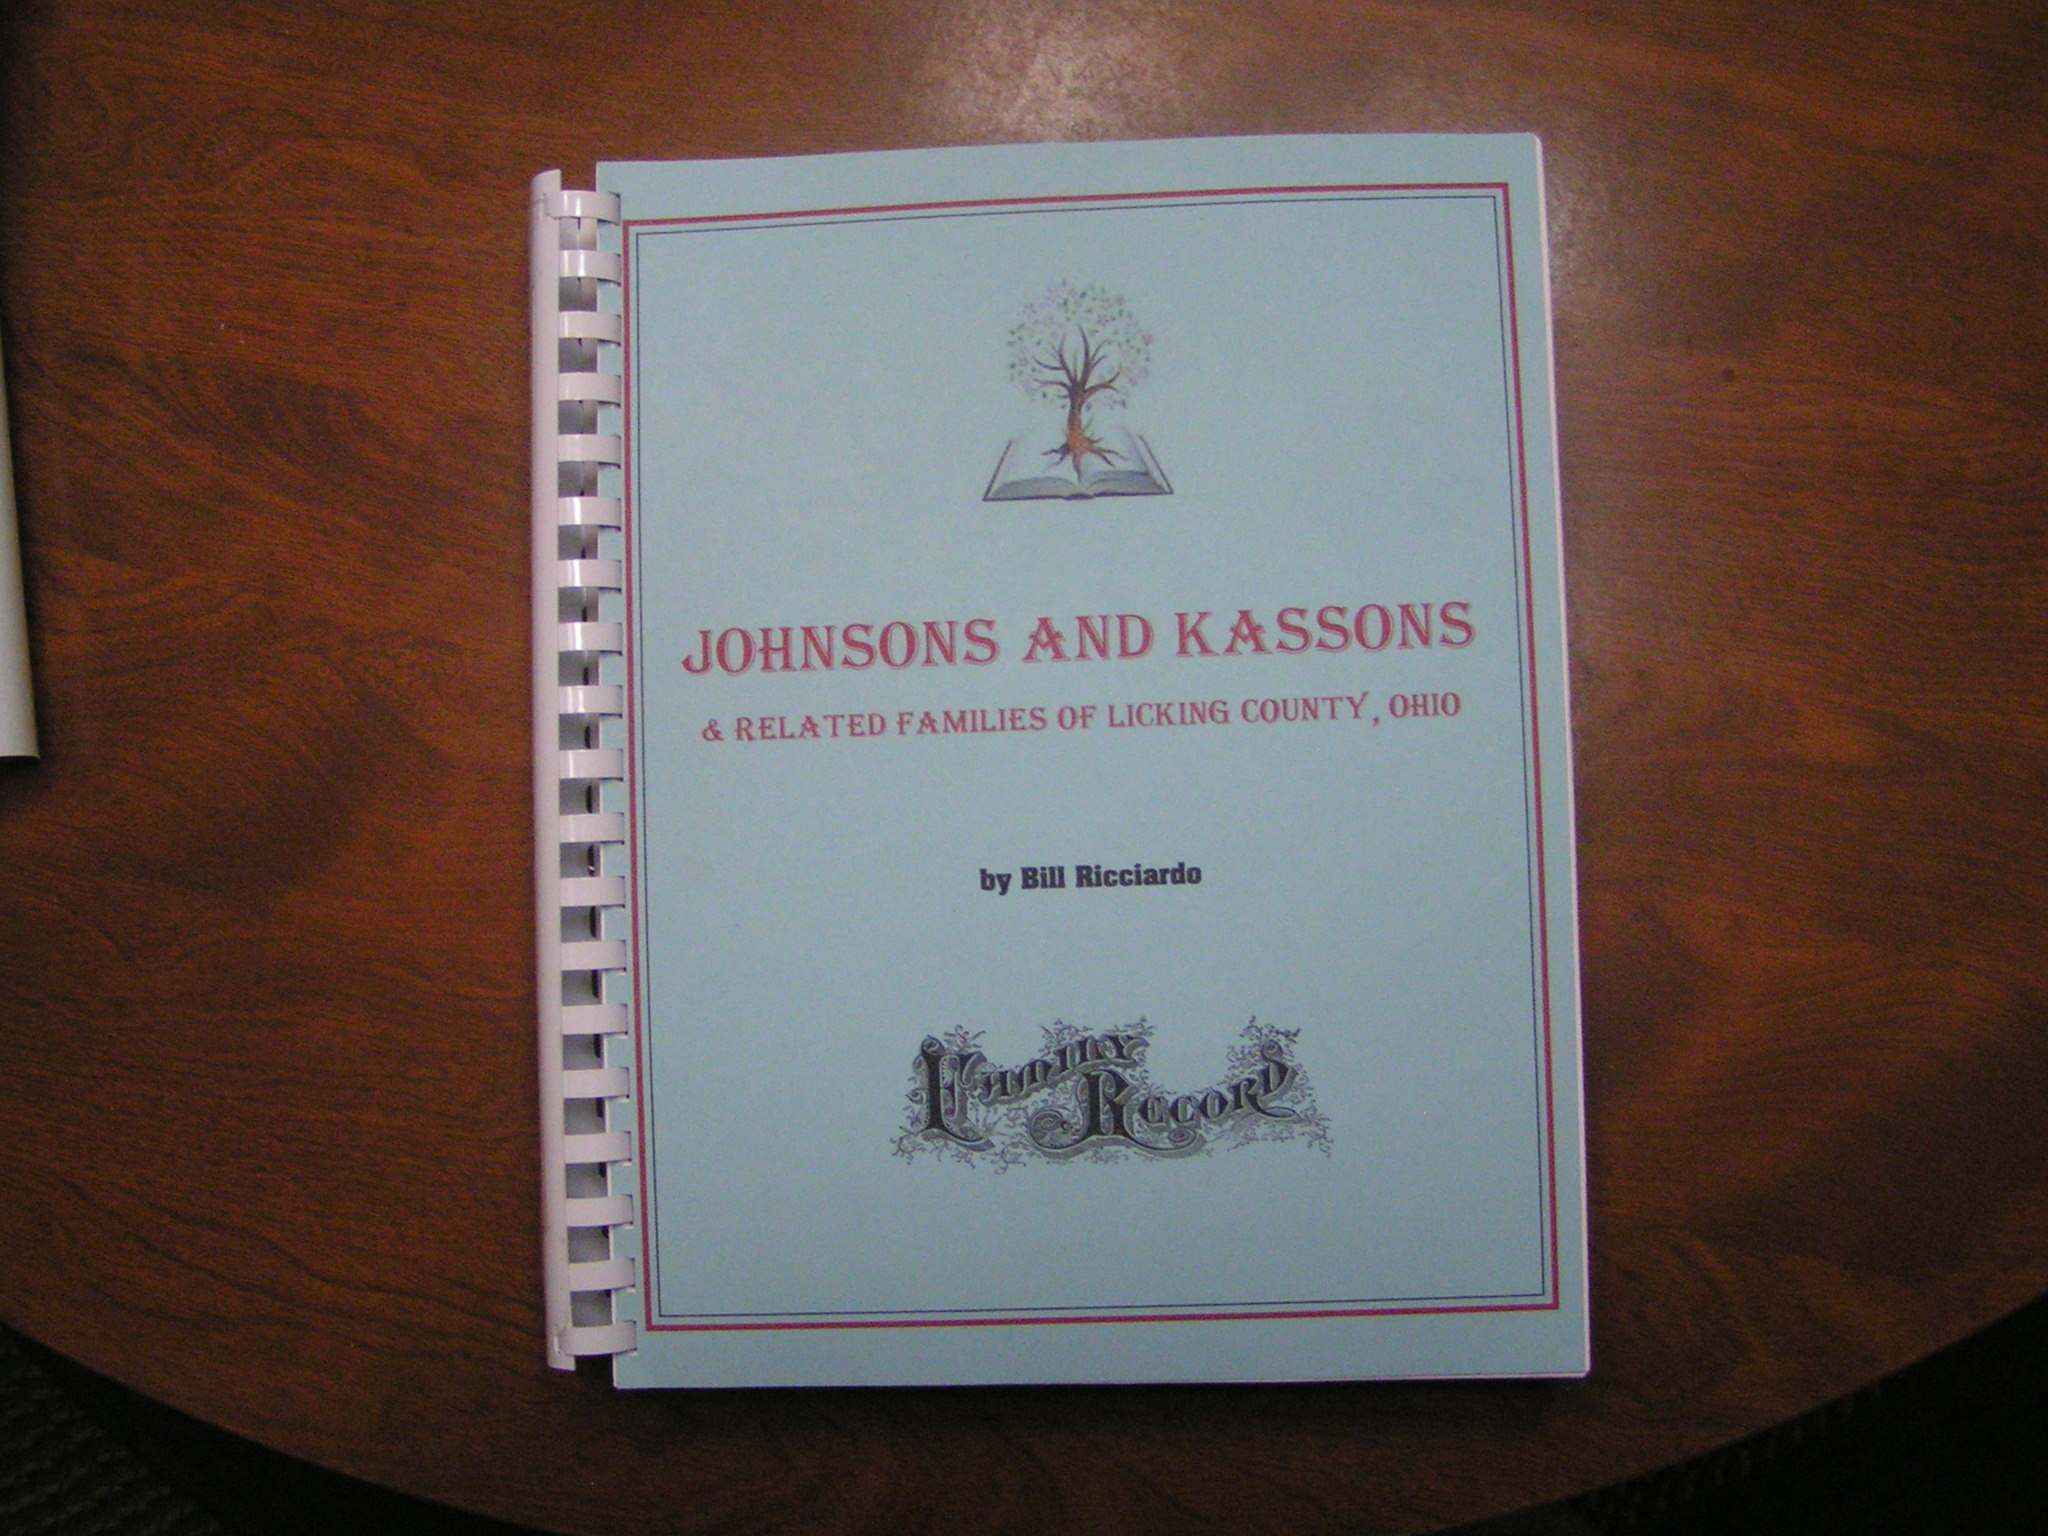 JOHNSONS and KASSONS and Related Families of Licking County, Ohio